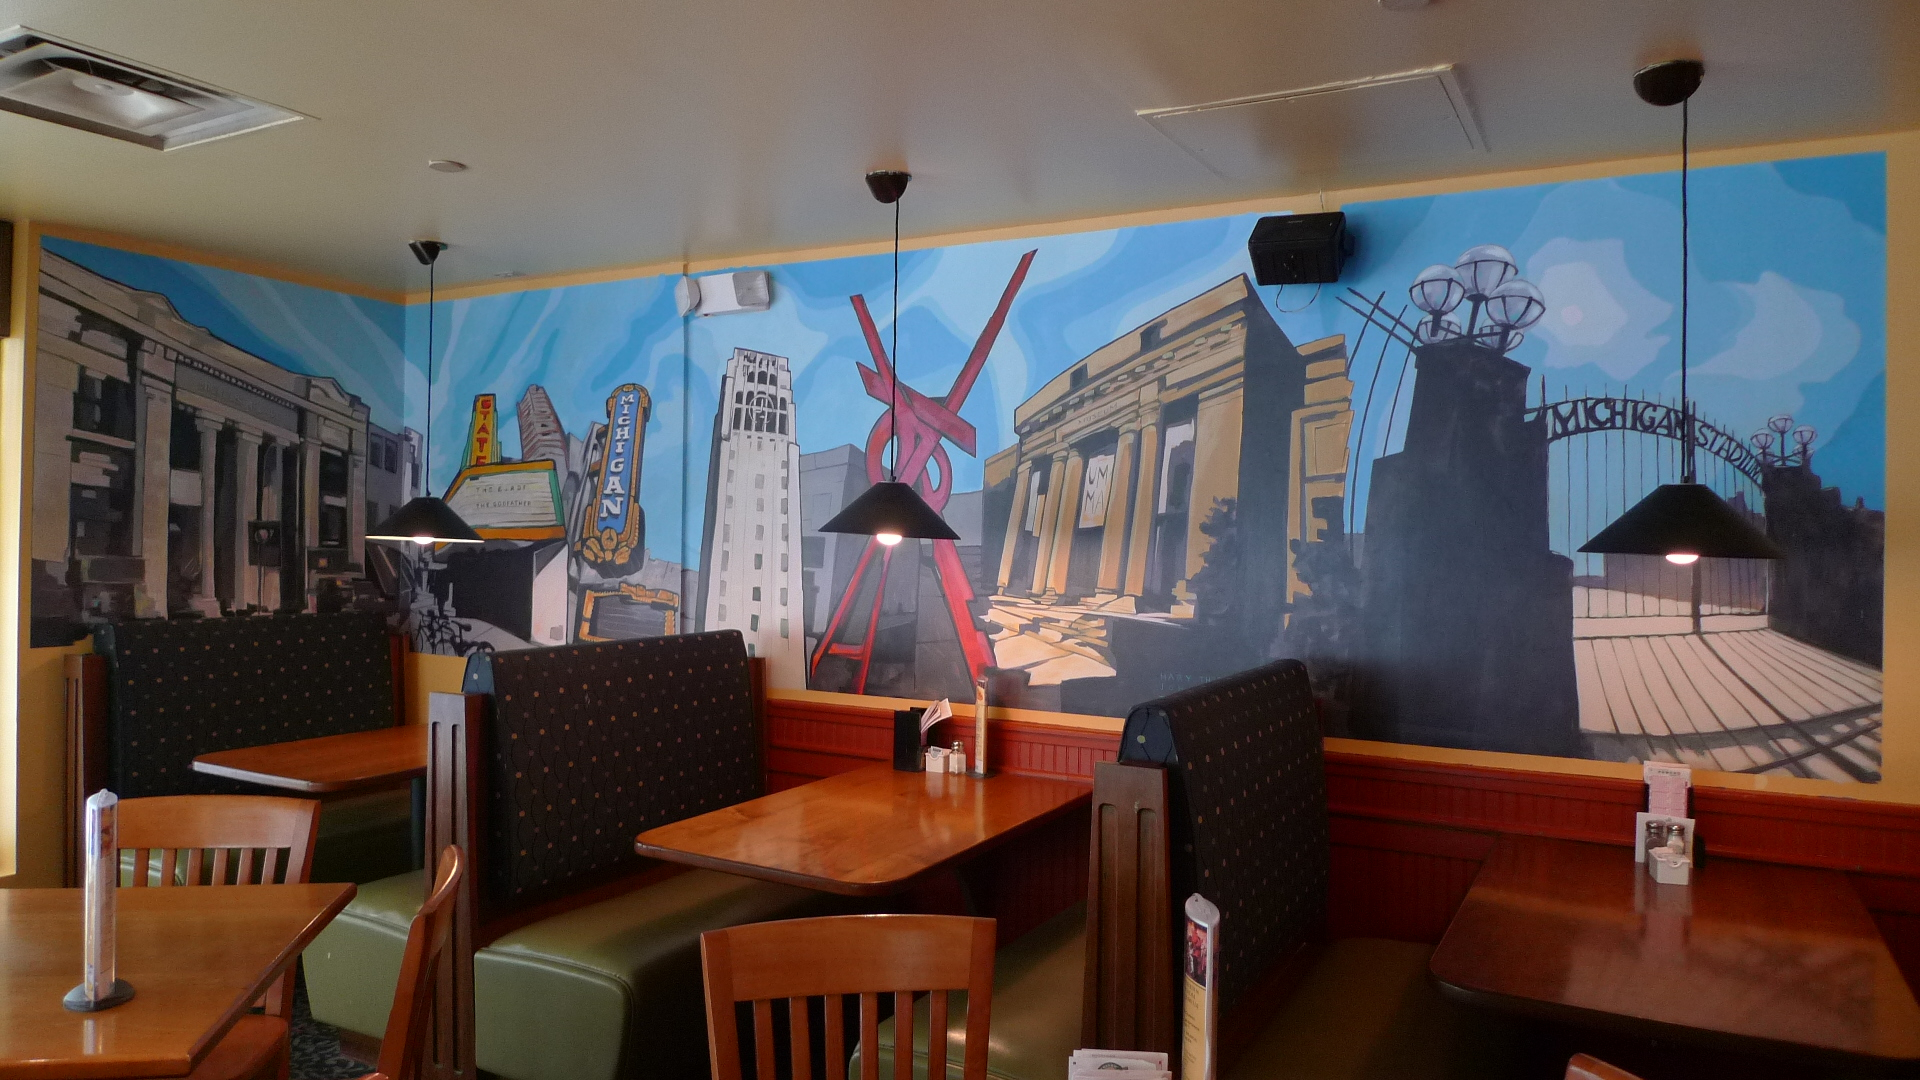 Guy hollerins restaurant murals tree town murals for Mural restaurant